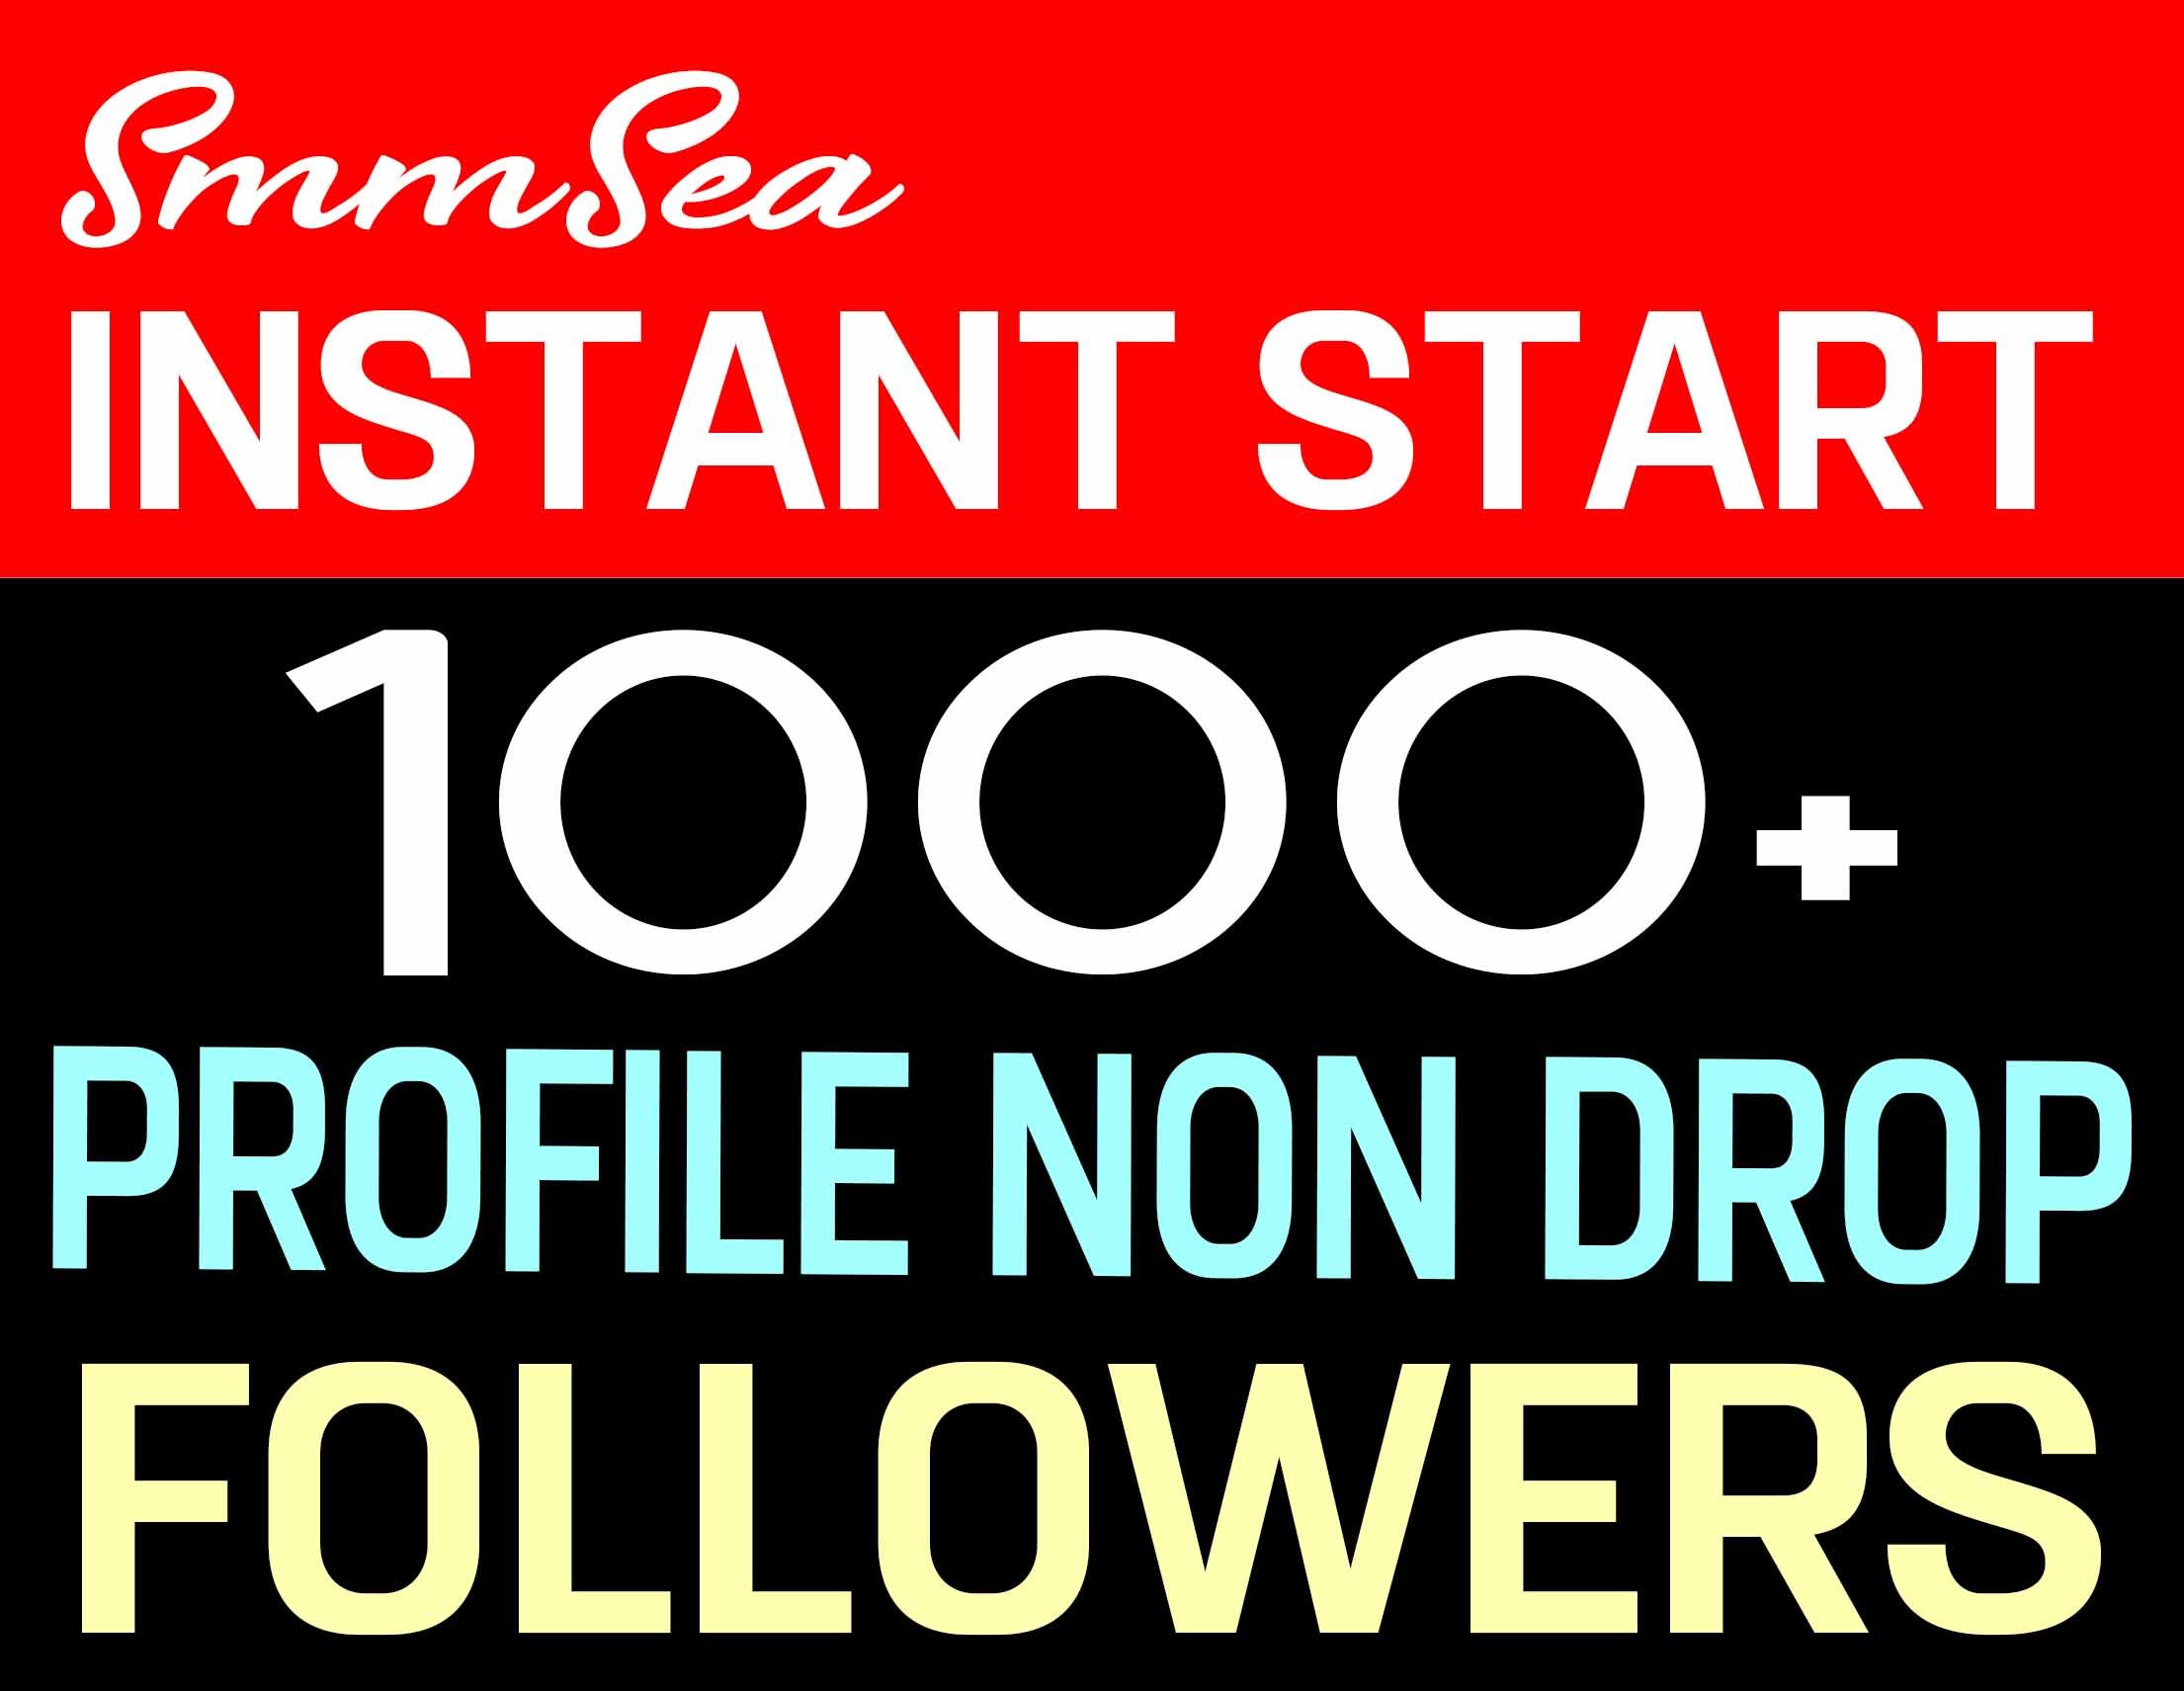 ADD 1000+ PROFILE FOLLOWERS HIGH QUALITY AND NON DROP - INSTANTLY